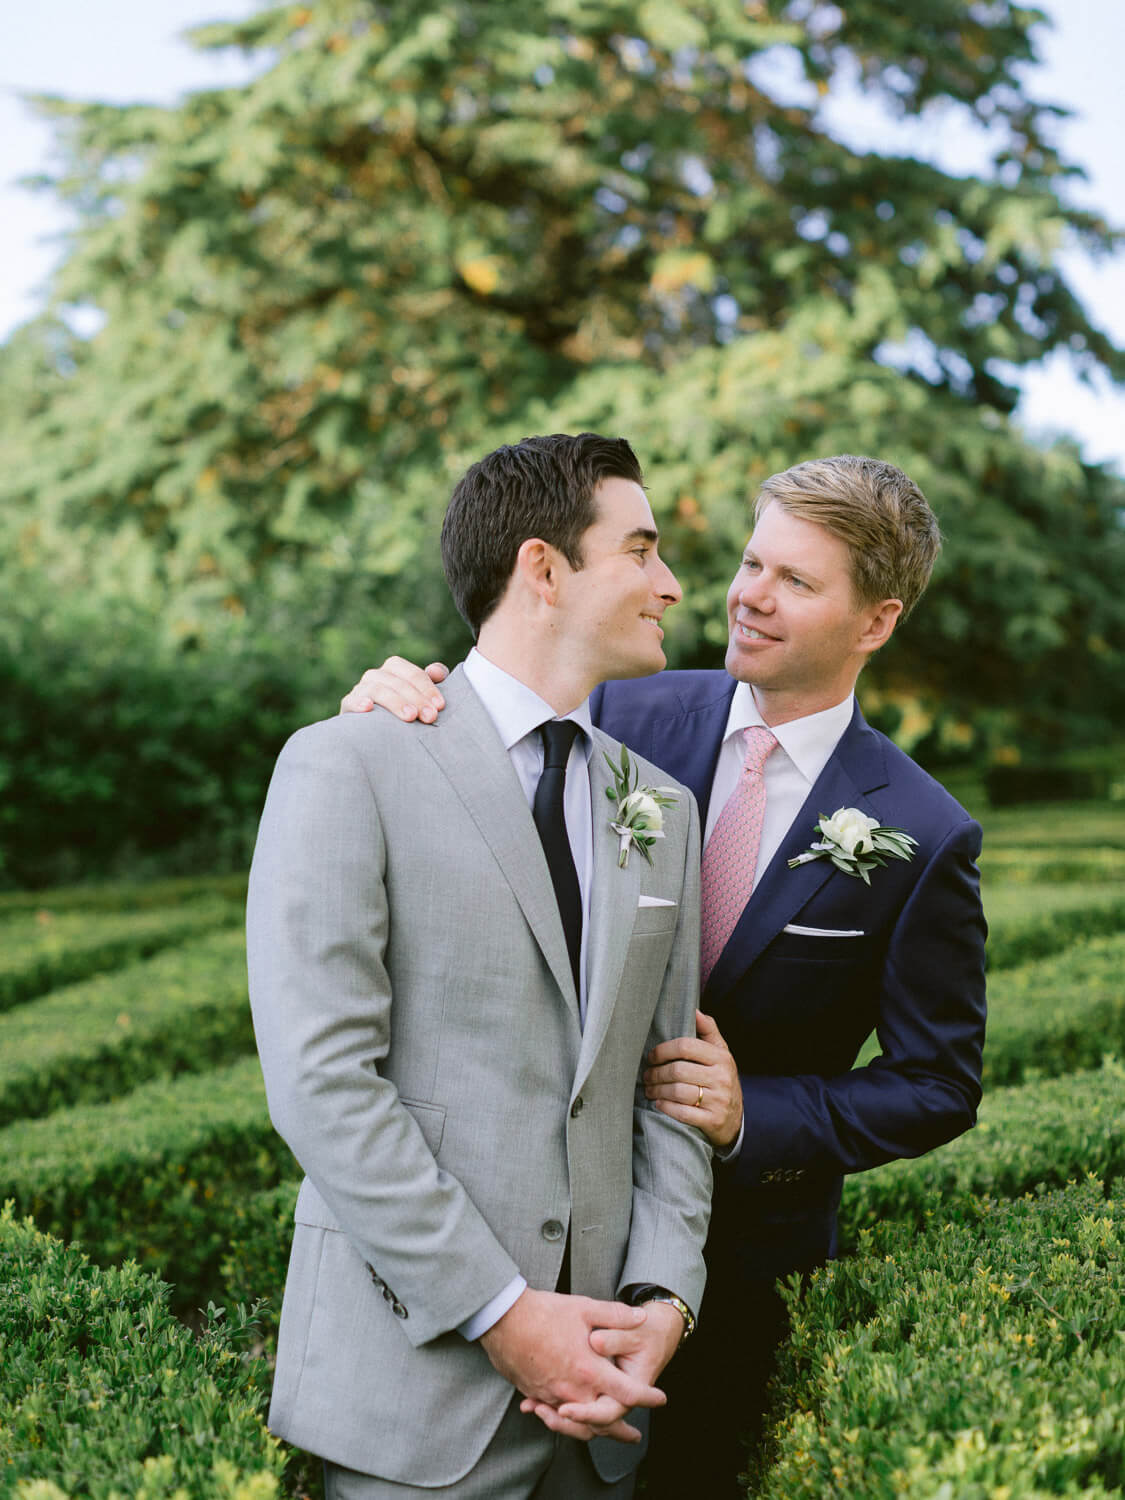 joyful newlyweds posing in Seteais Palace French garden by Portugal Wedding Photographer